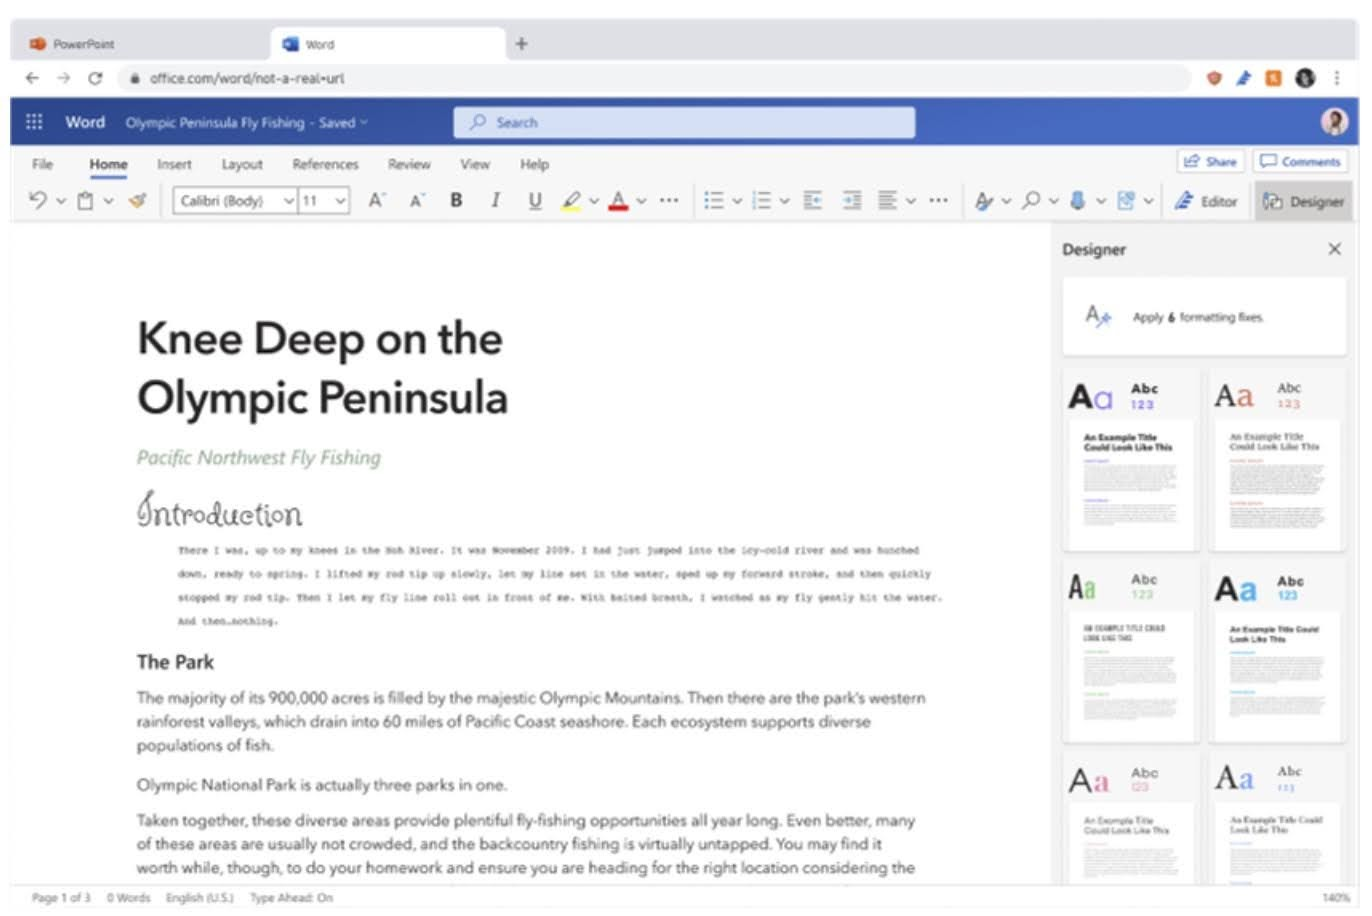 Apply formatting fixes by clicking on a button at the top of the pane or allow formatting fixes to be applied automatically when selecting a theme.